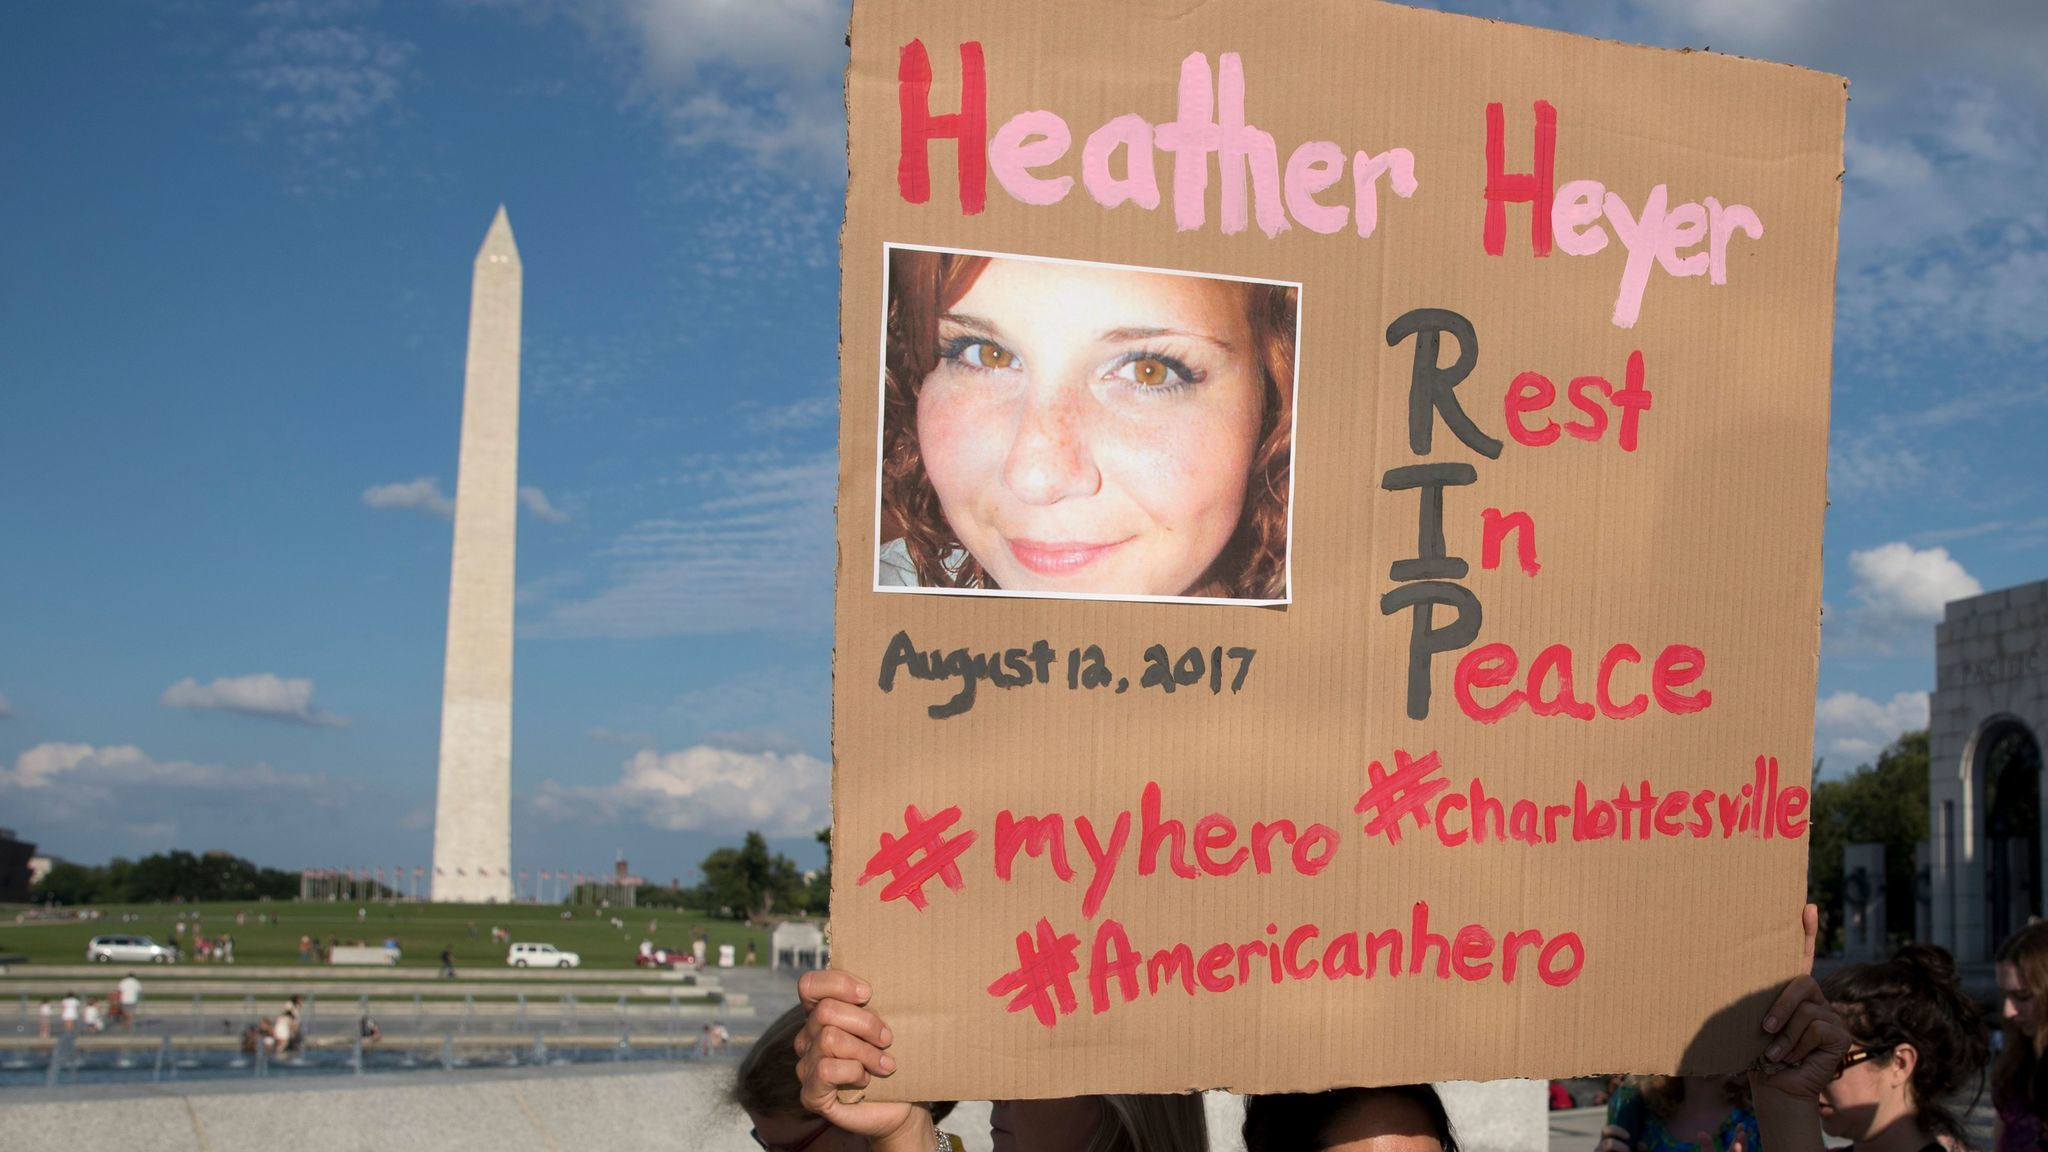 A woman holds a sign honoring Heather Heyer, a victim of this weekend's violence in Charlottesville, Va.,